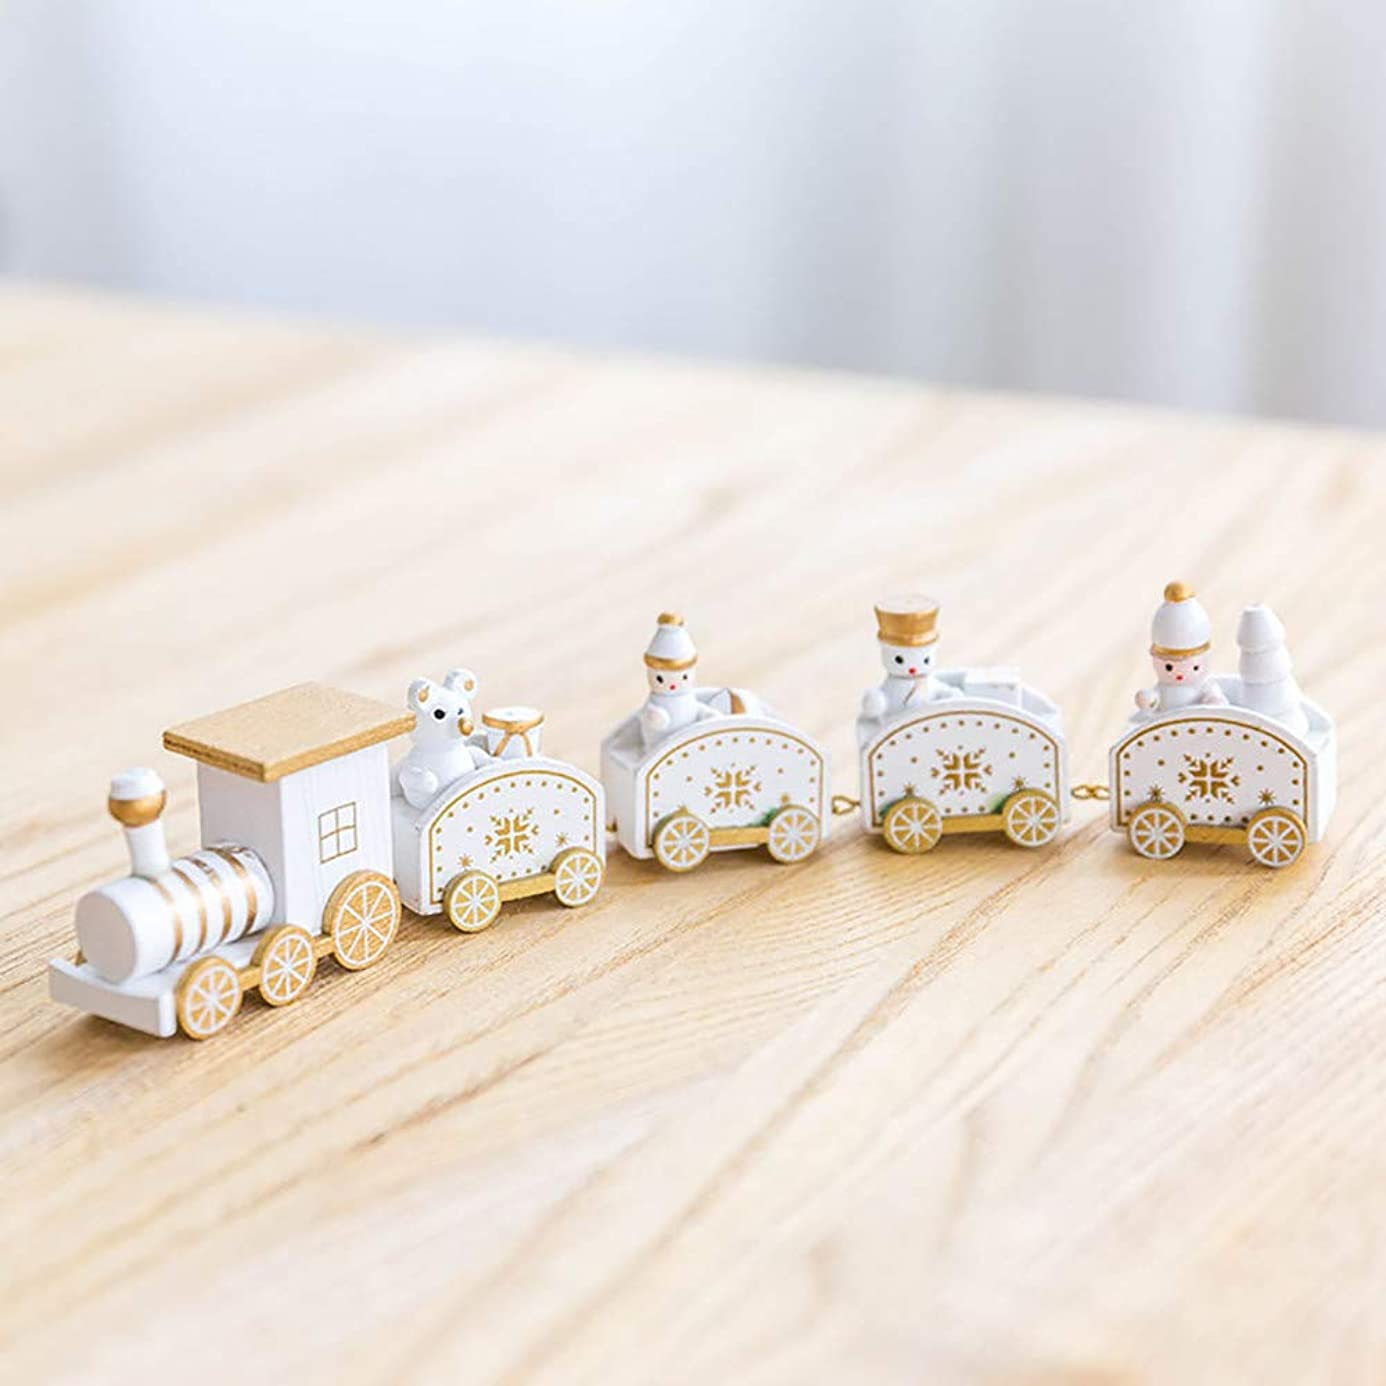 Iusun Christmas Tree Decorations Wooden Small Train Kids Gifts Toy Favor DIY Ornament Party New Year Decor Toys Playtime